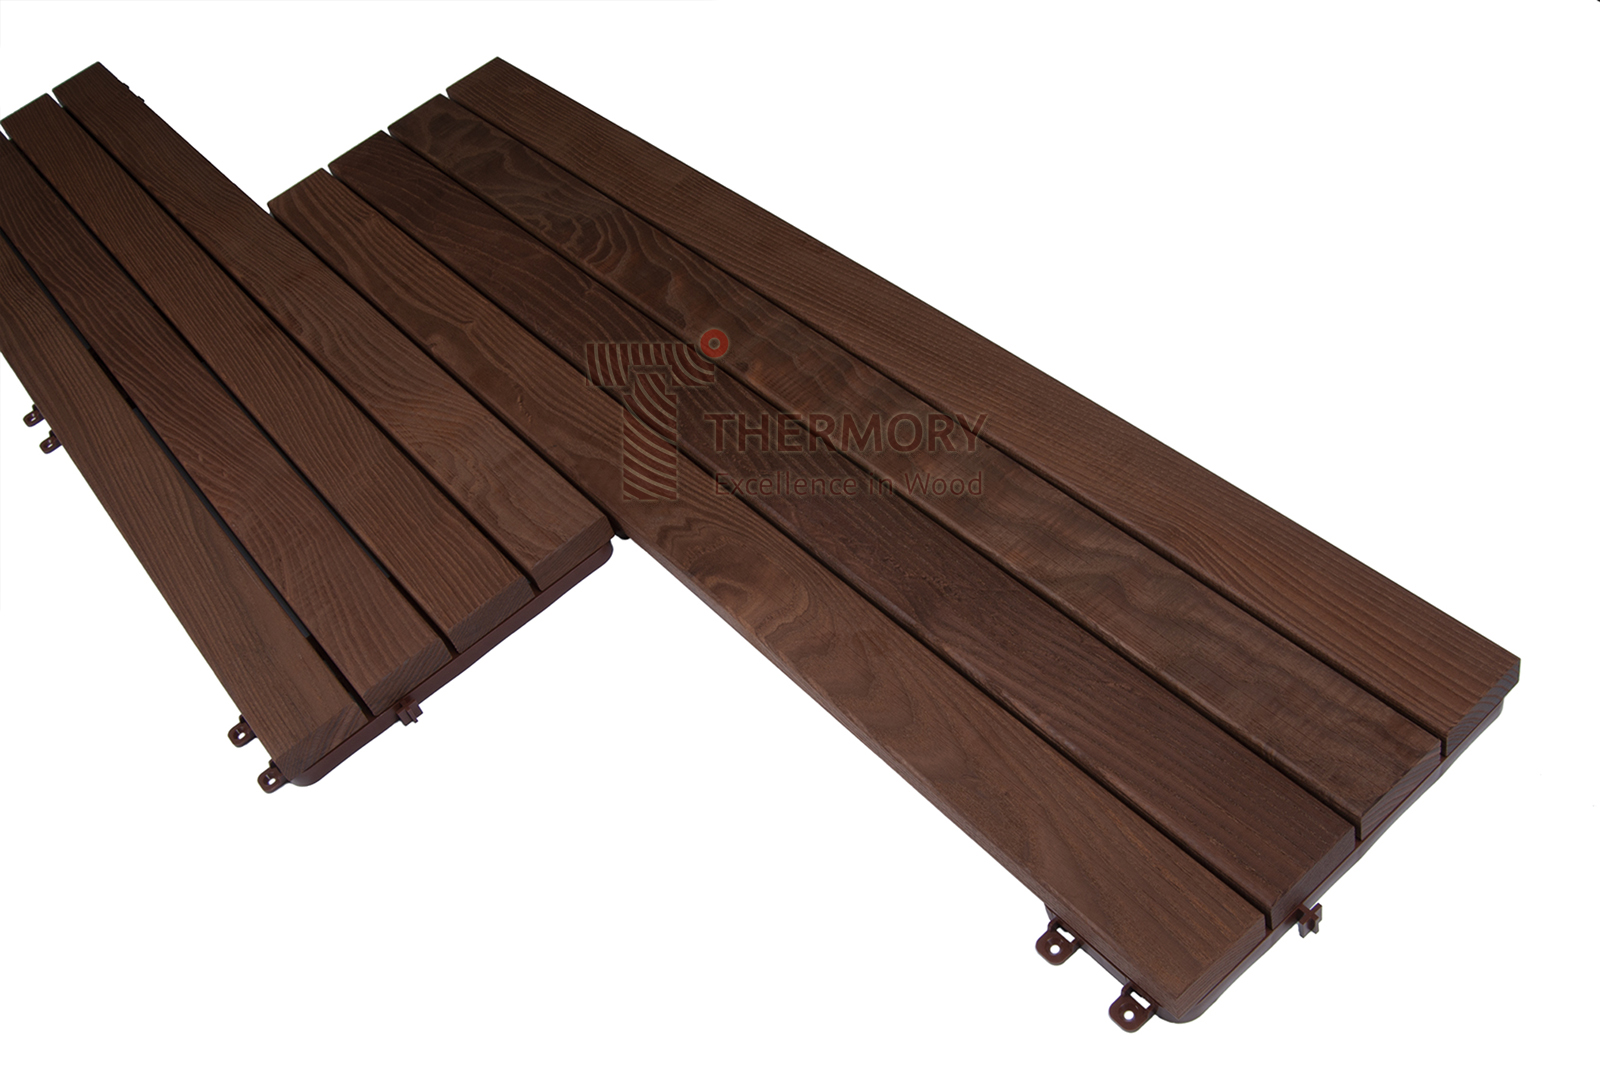 Quick Deck Maxi Slim - Building a deck doesn't have to be challenging and time-consuming. Thermory® QuickDeck® collection offers a wide range of pre-fabricated deck tiles which are easy to install.QuickDeck® comes in two different designs: Maxi & Mosaic.The simple click-system is suitable for installation on solid, flat surfaces, both interior and exterior.